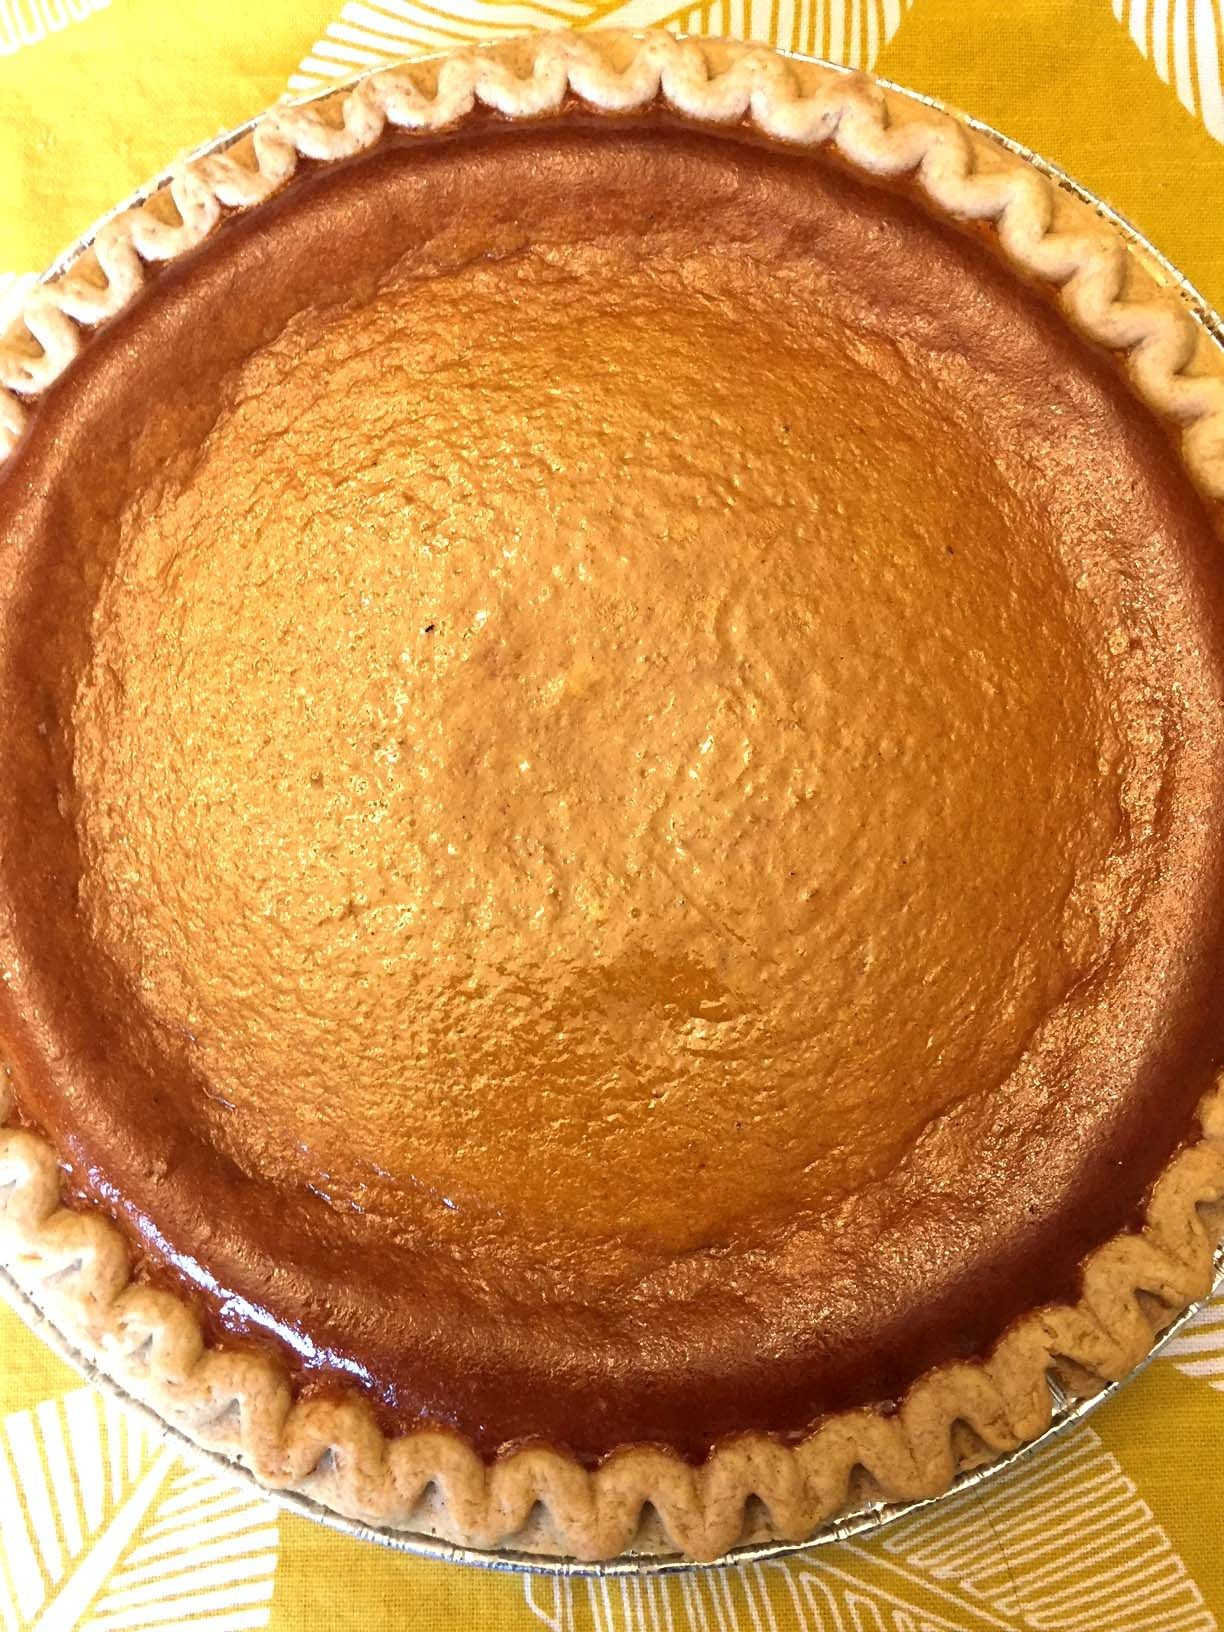 Easy Pumpkin Pie Recipe With Sweetened Condensed Milk Recipe In 2020 Pumpkin Pie Recipe Easy Pumpkin Pie Recipe Homemade Sweet Potato Pie